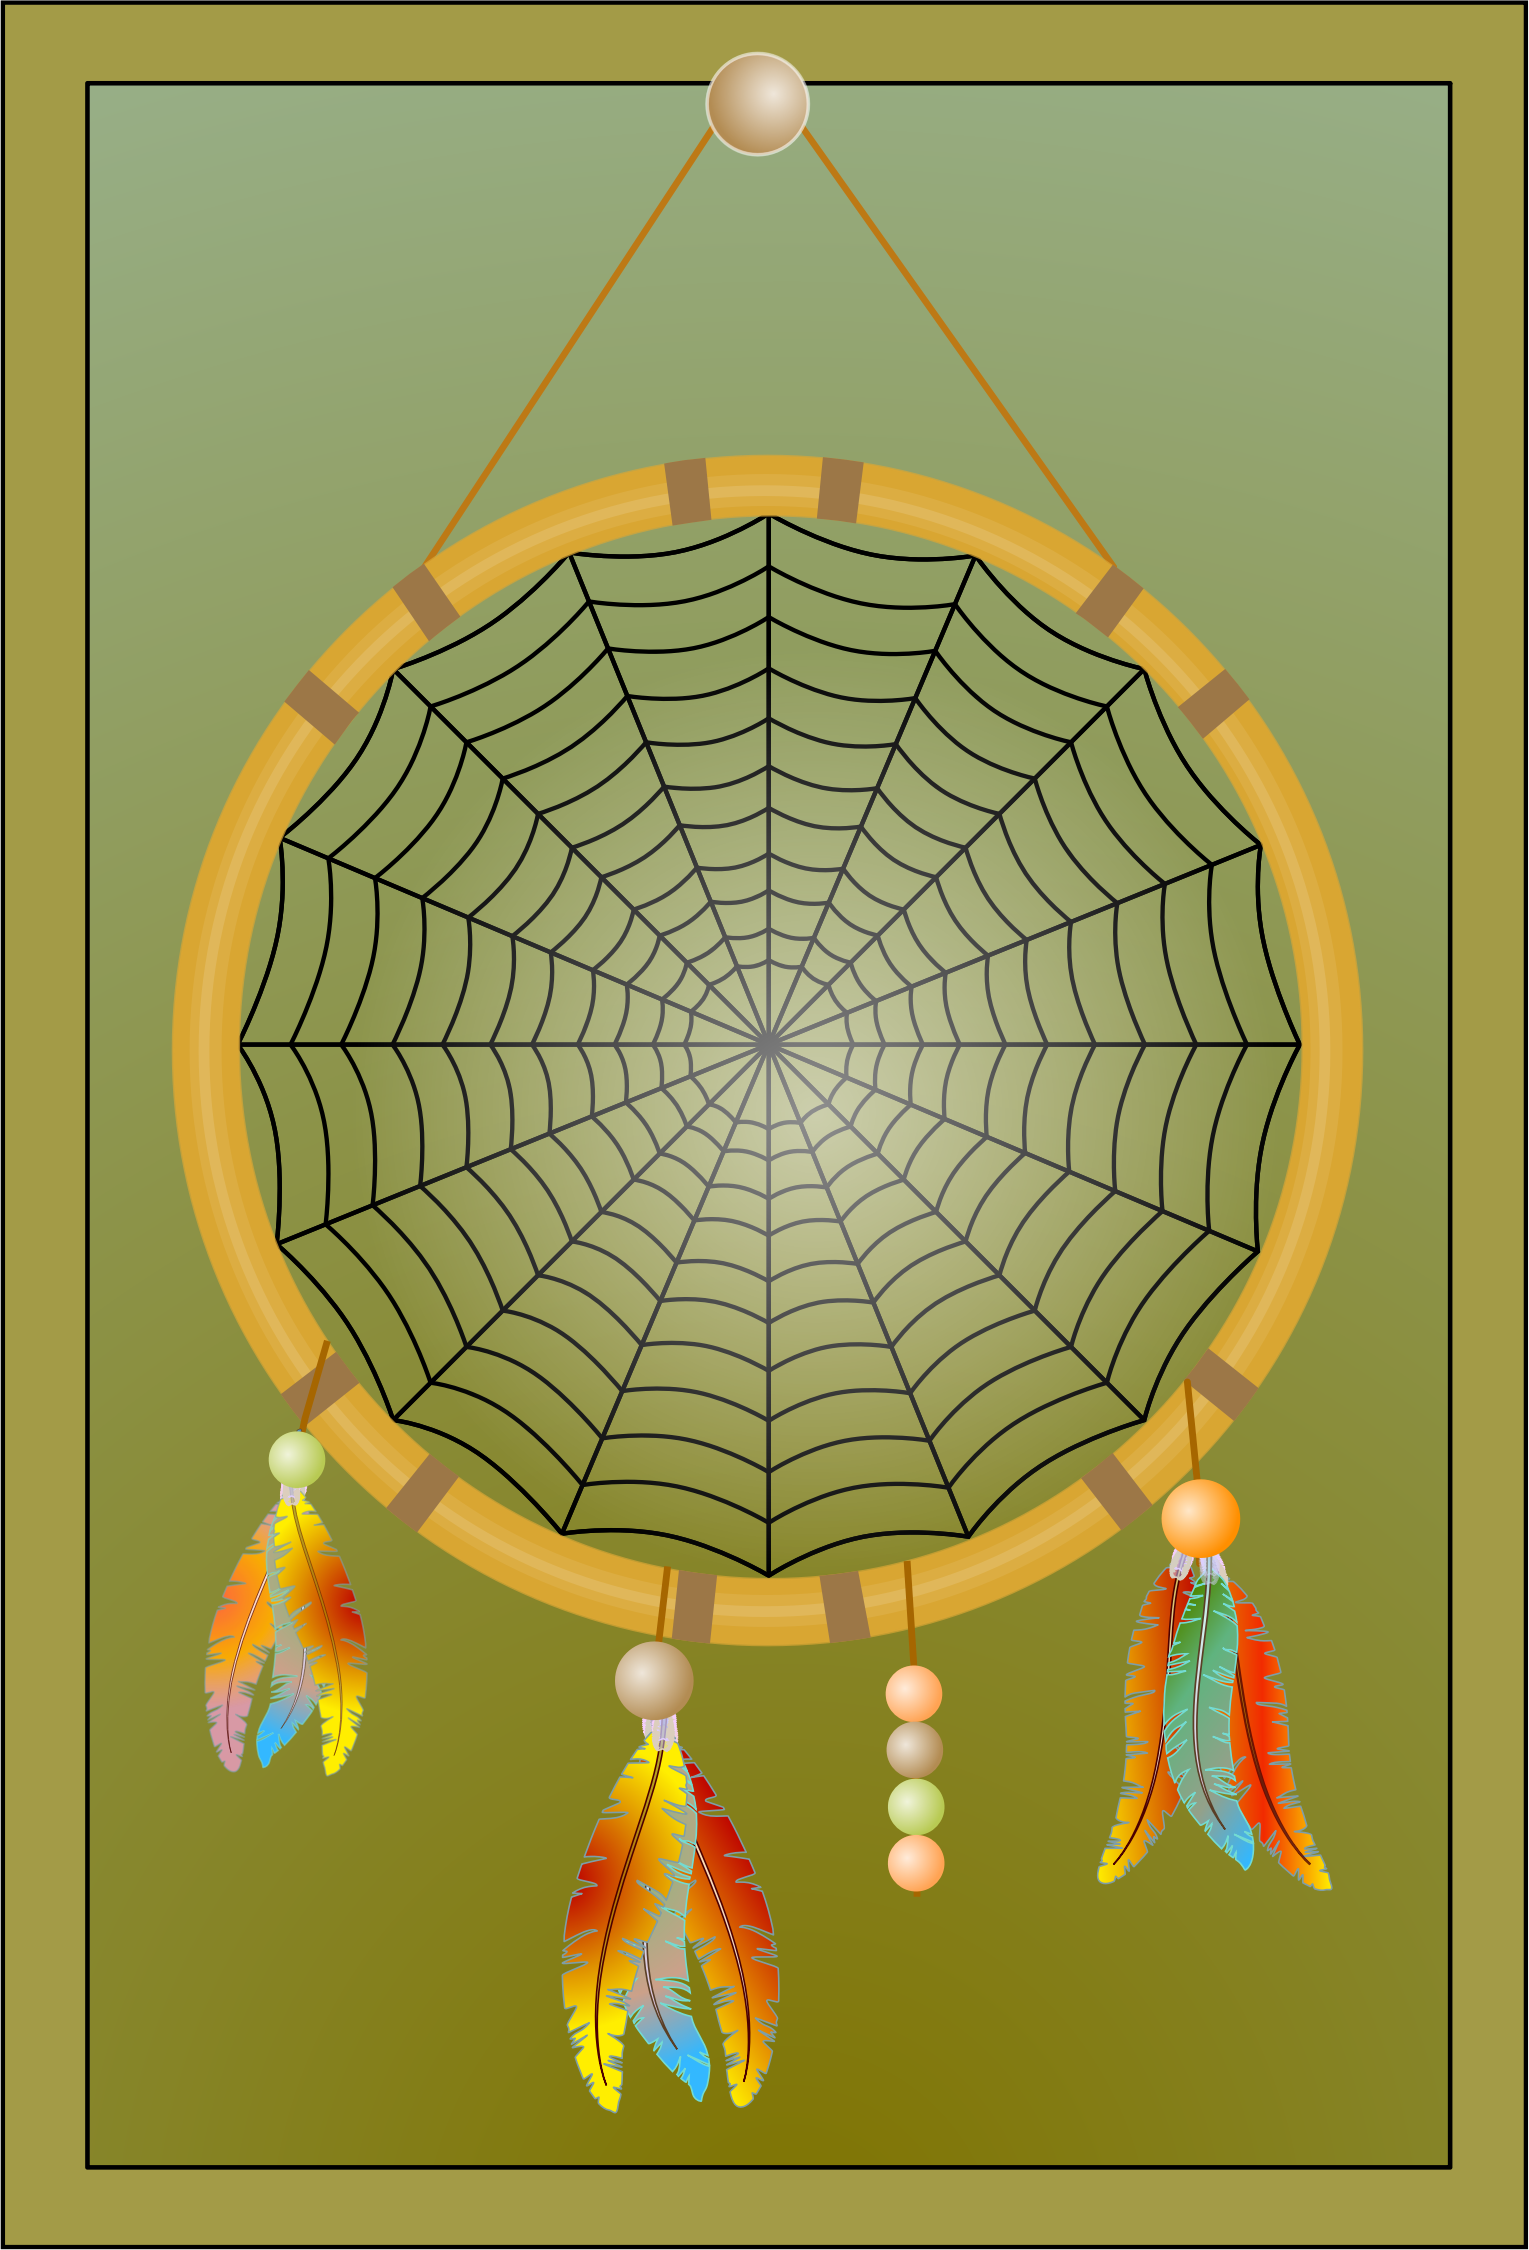 Dreamcatcher - webed by Greg.M